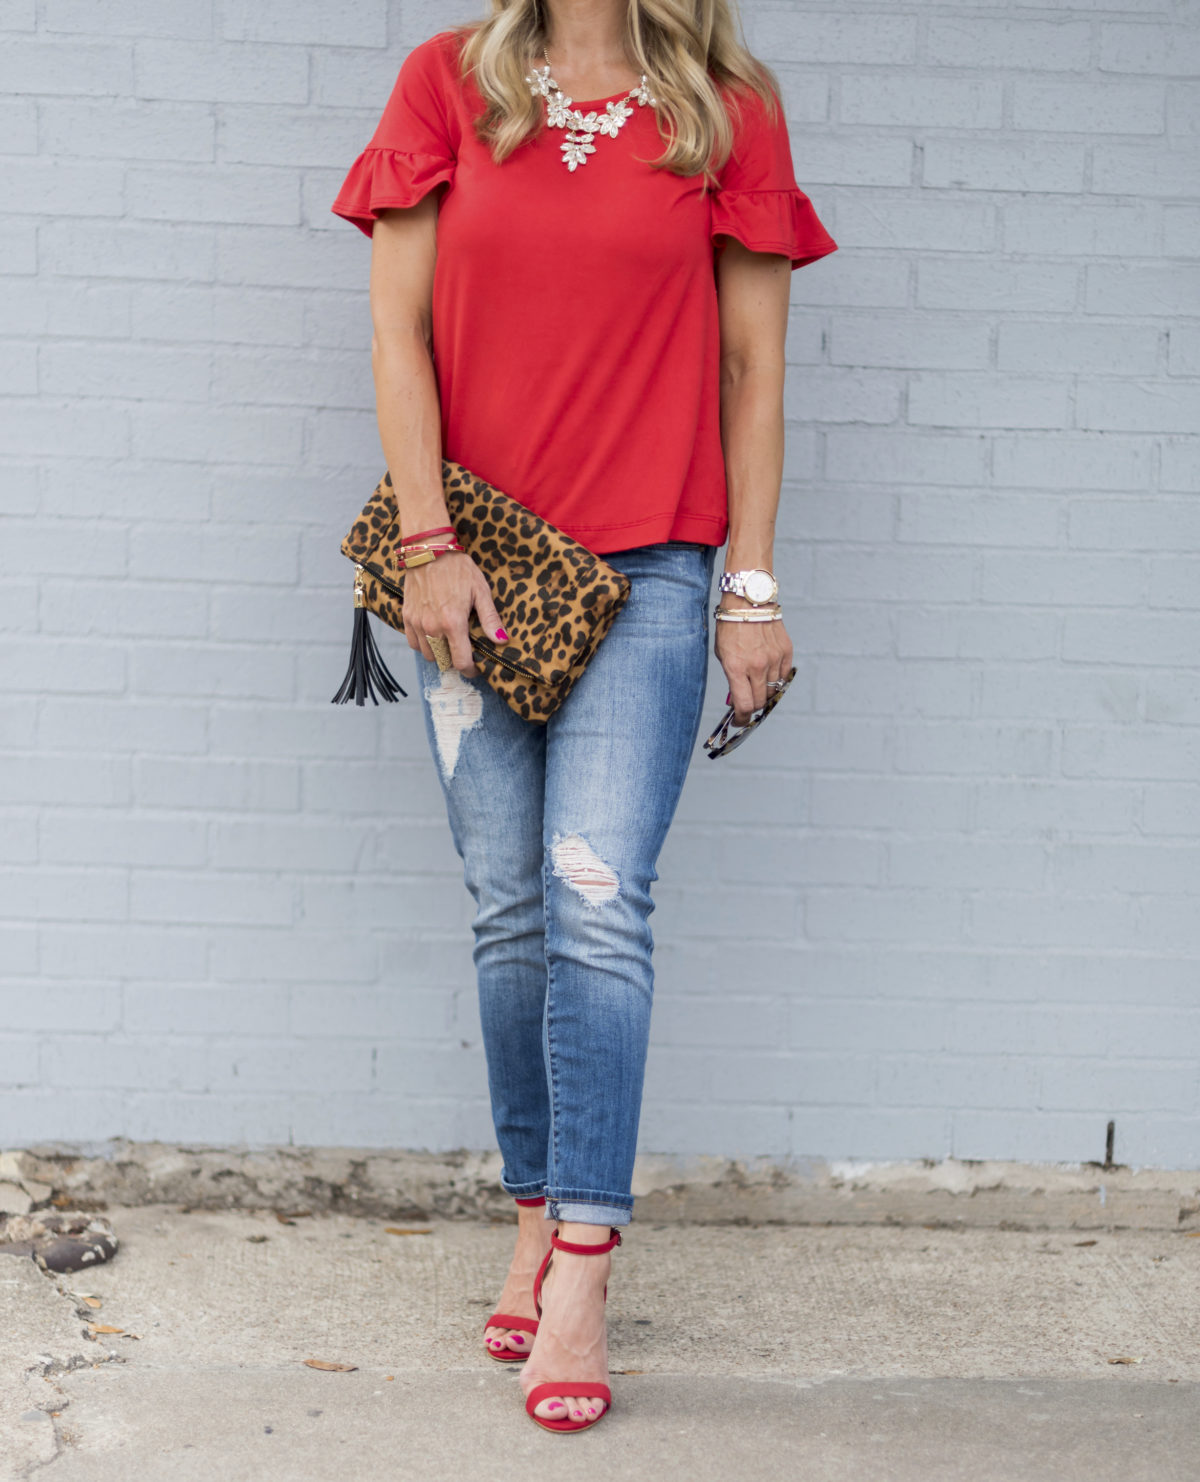 red top jeans